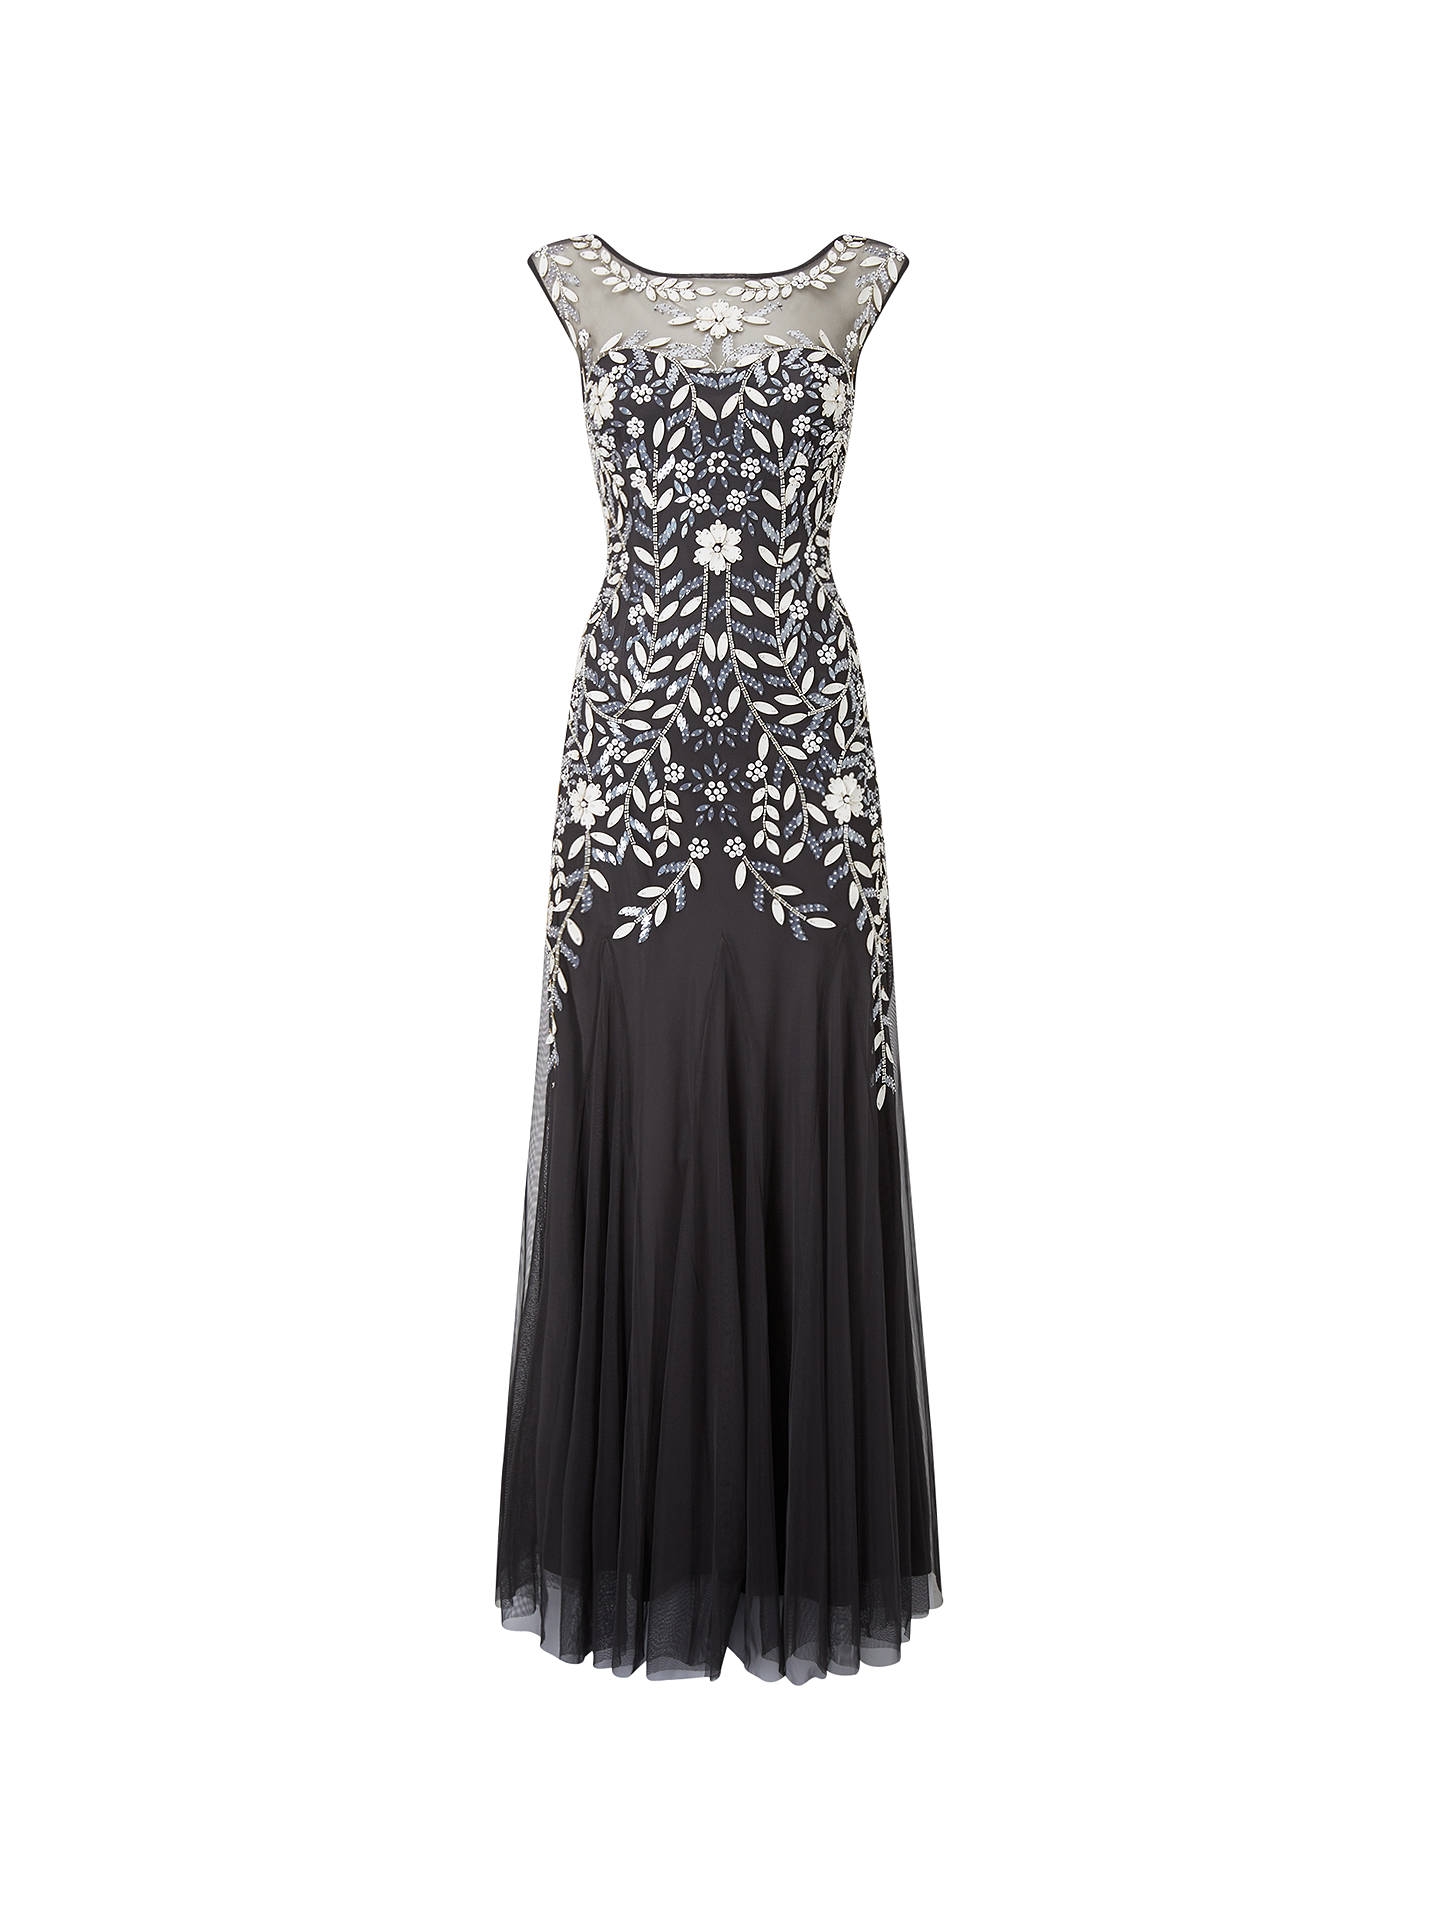 BuyPhase Eight Collection 8 Sabine Tulle Dress, Charcoal/Multi, 6 Online at johnlewis.com